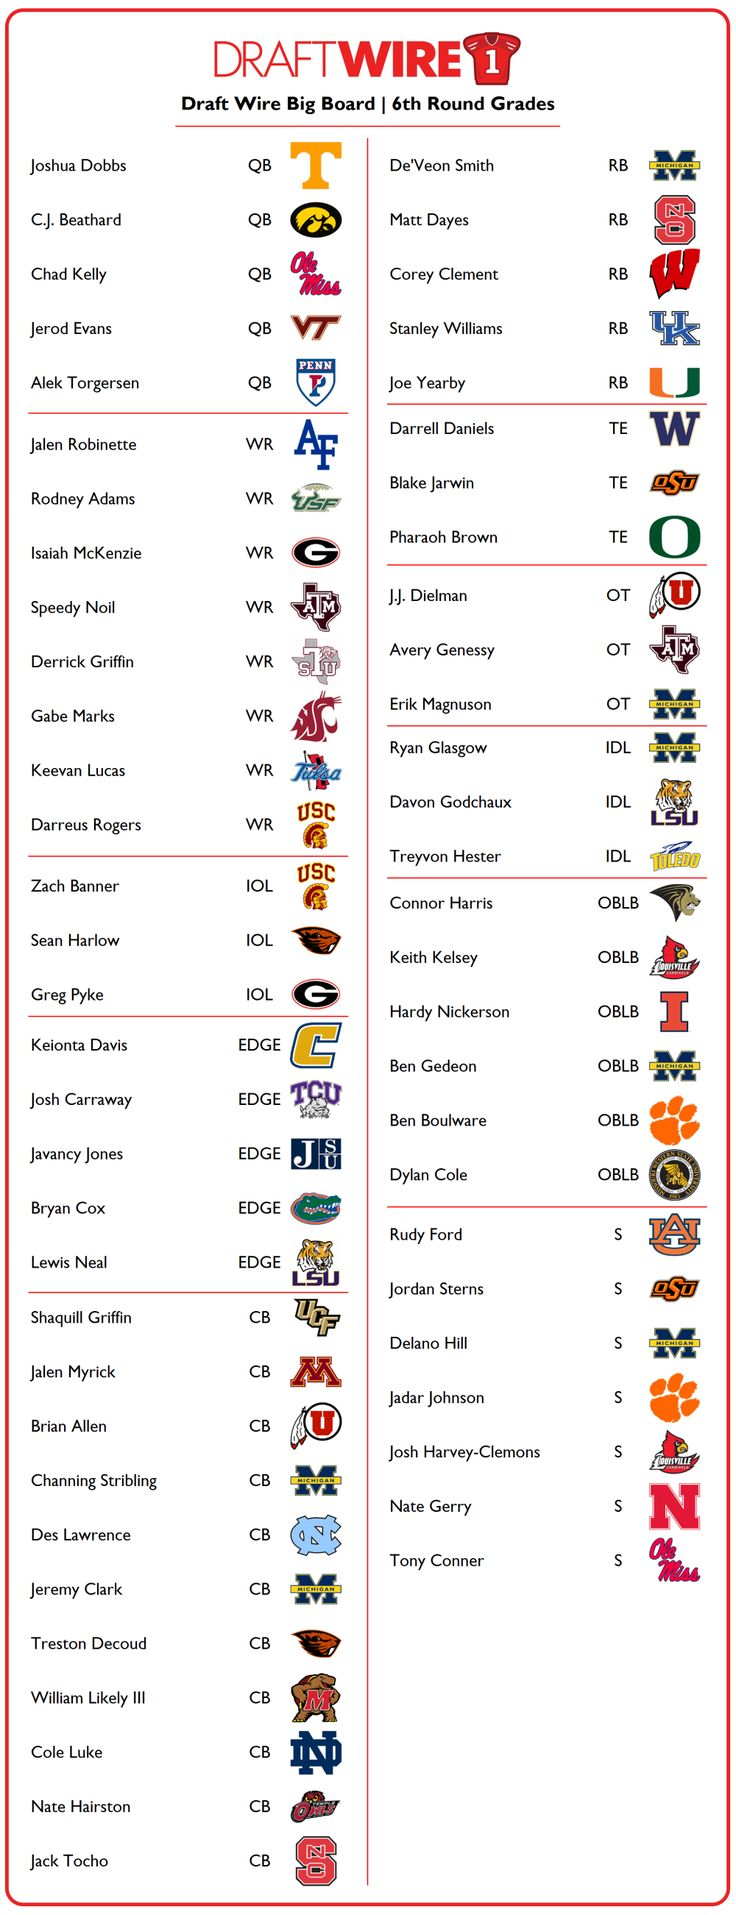 2017 NFL draft big board: Complete overall rankings | The Draft Wire | Page 6